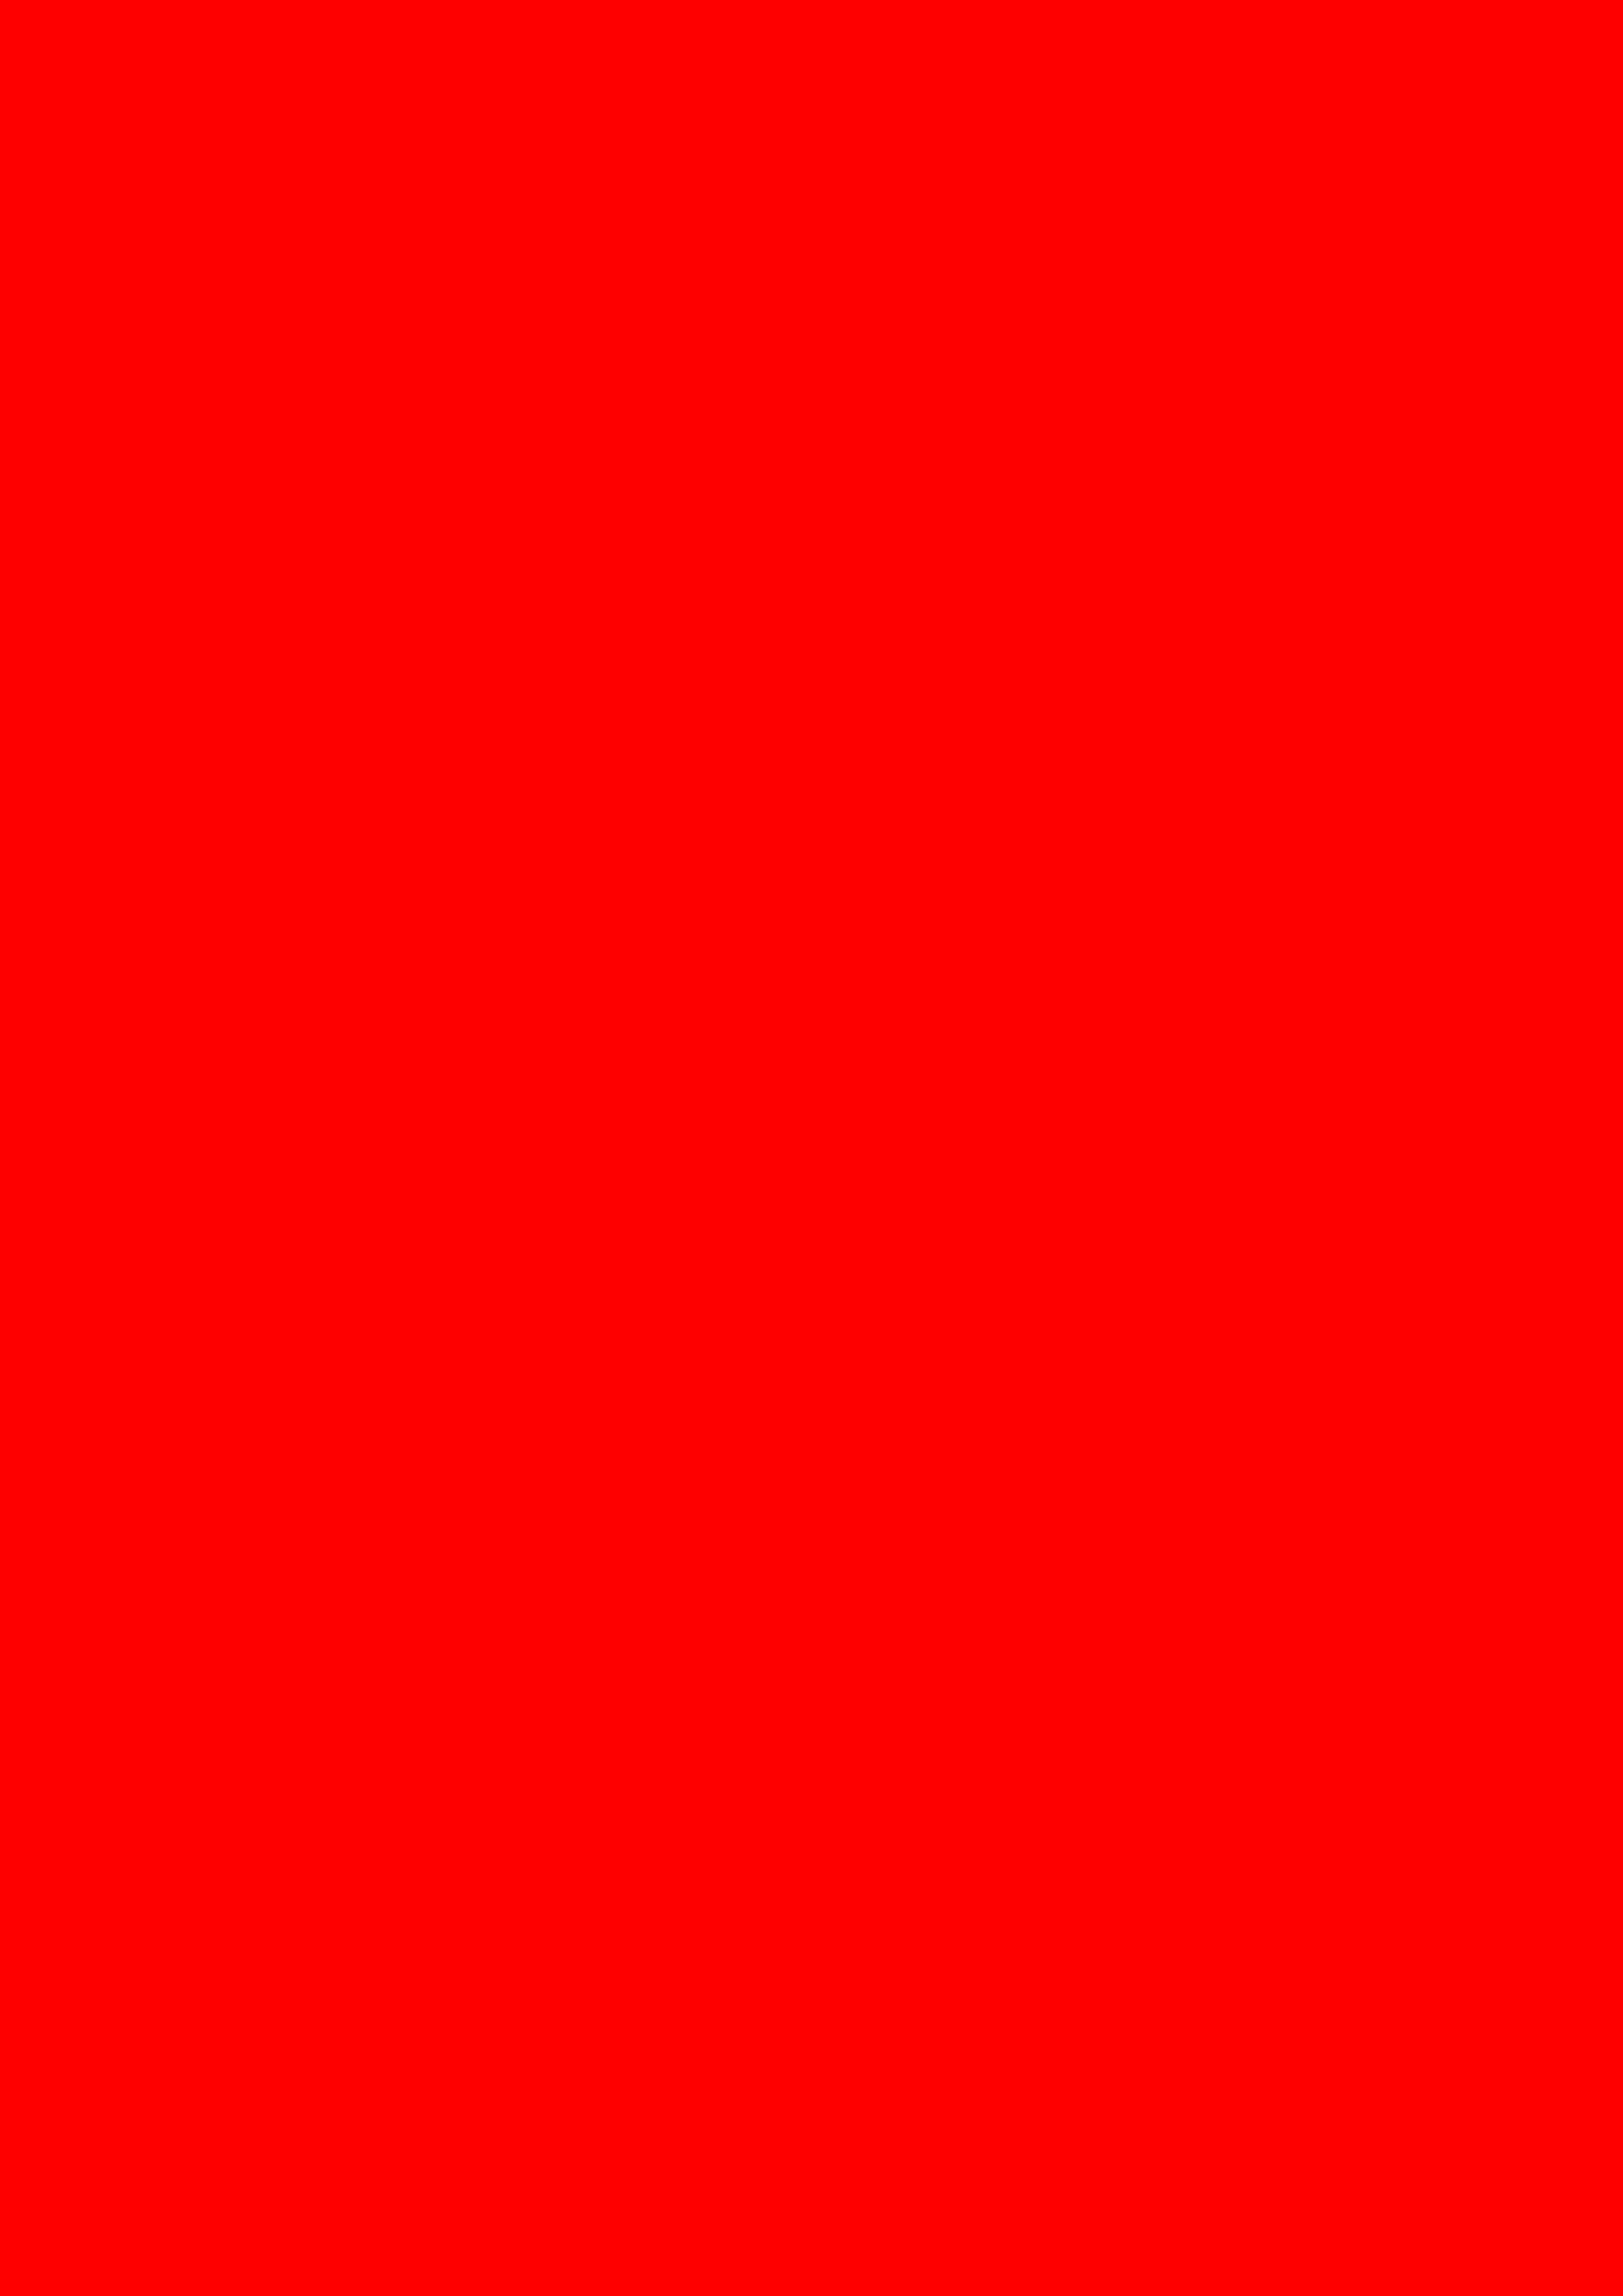 2480x3508 Red Solid Color Background